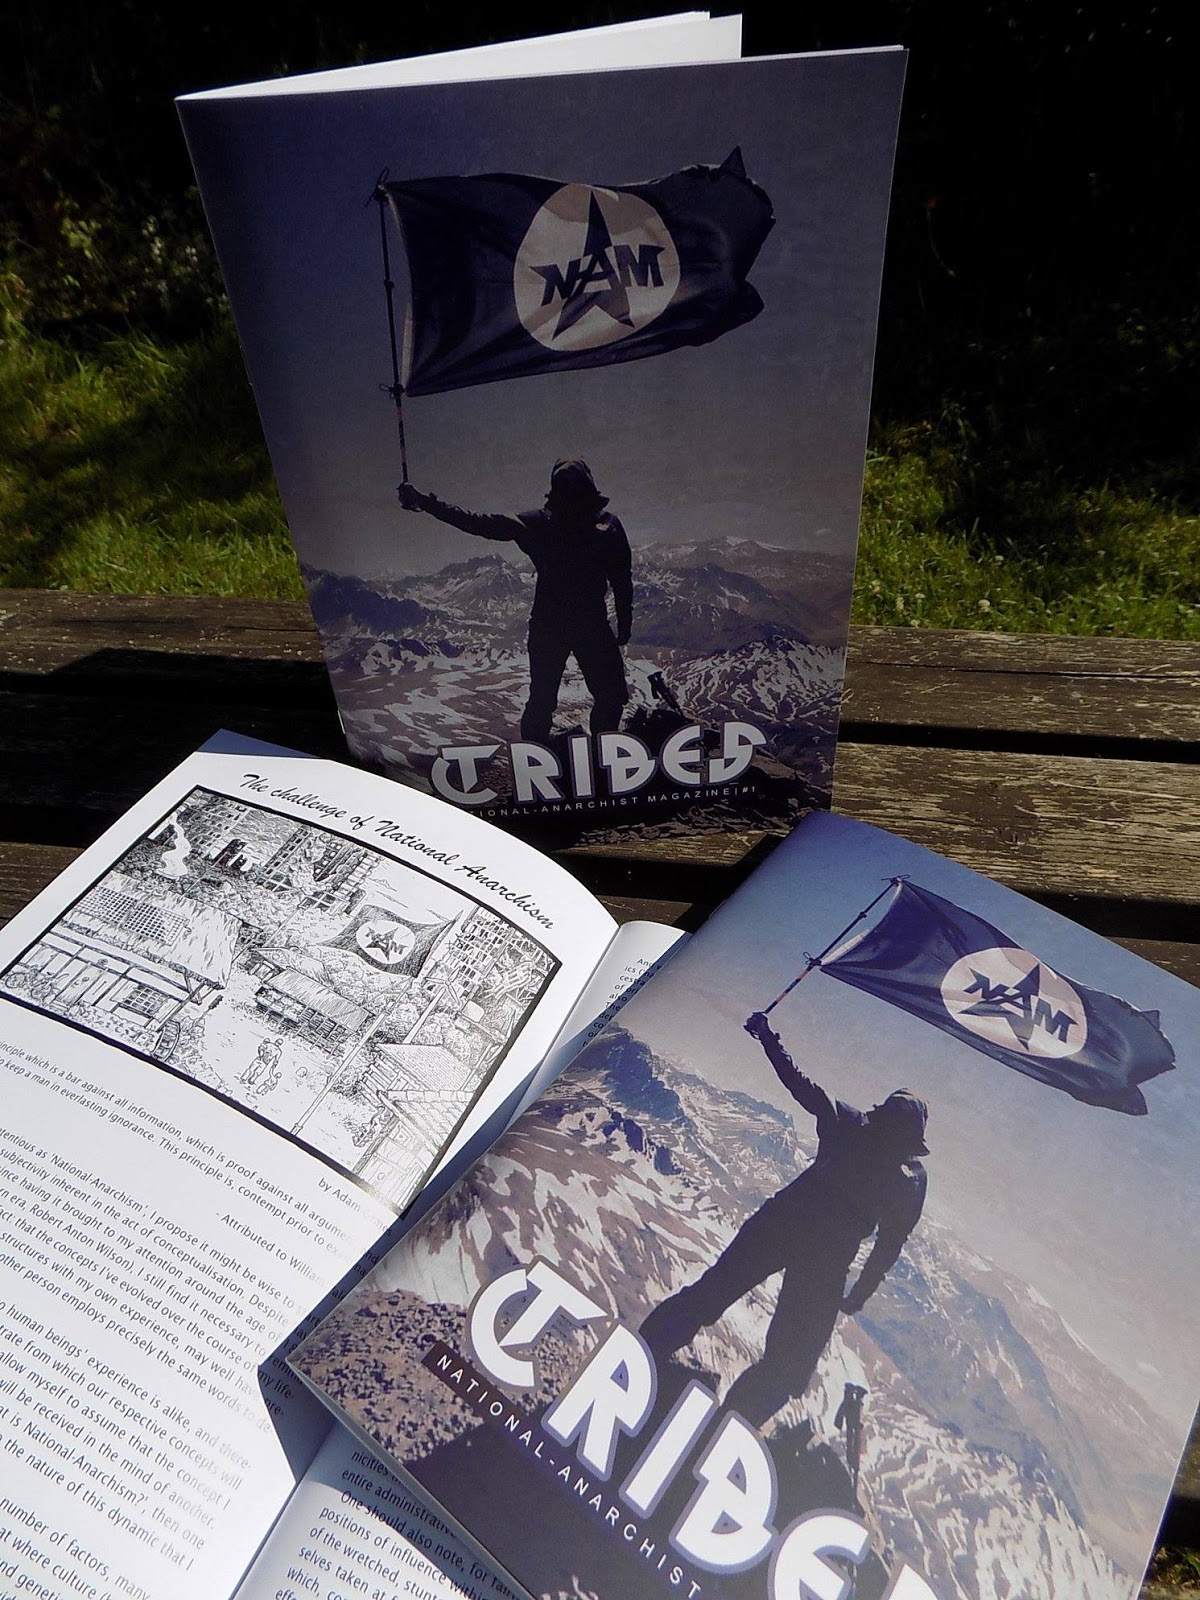 national anarchist movement tribes magazine now available